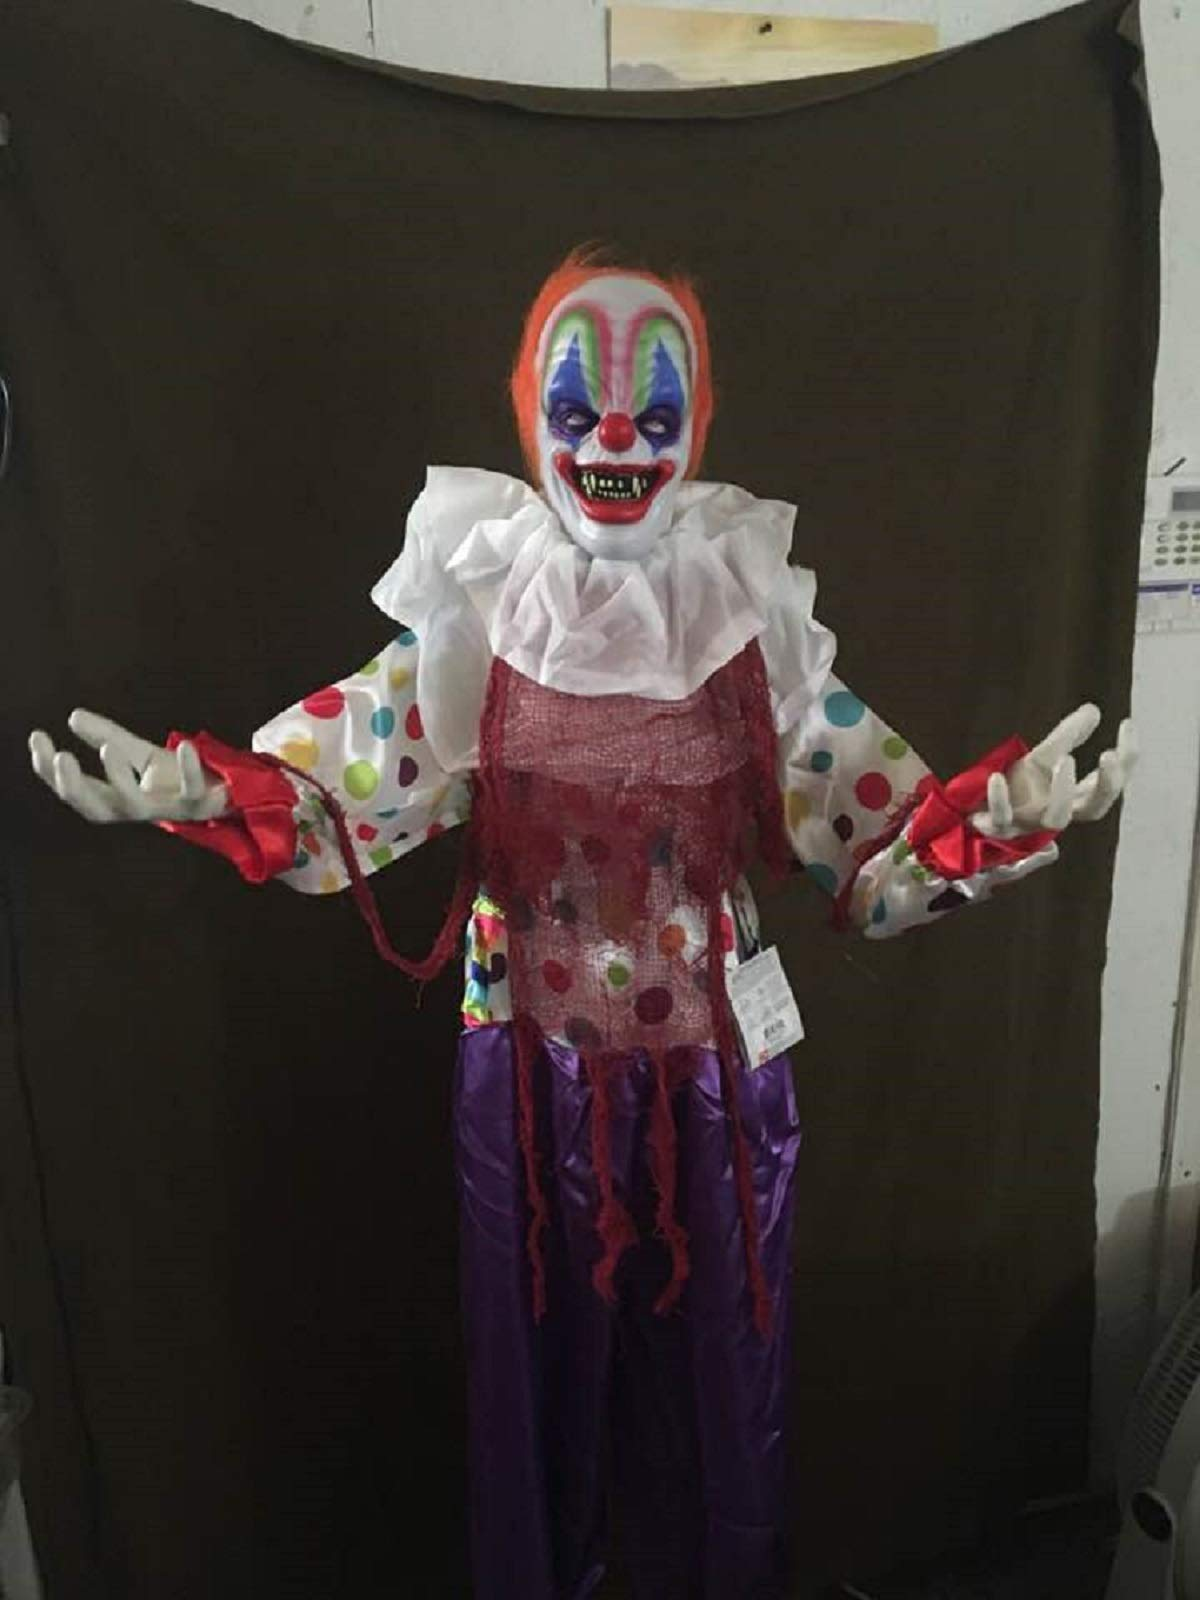 ghi Halloween Talking Creepy Clown with Animated Head and Arms Standing Prop Decoration